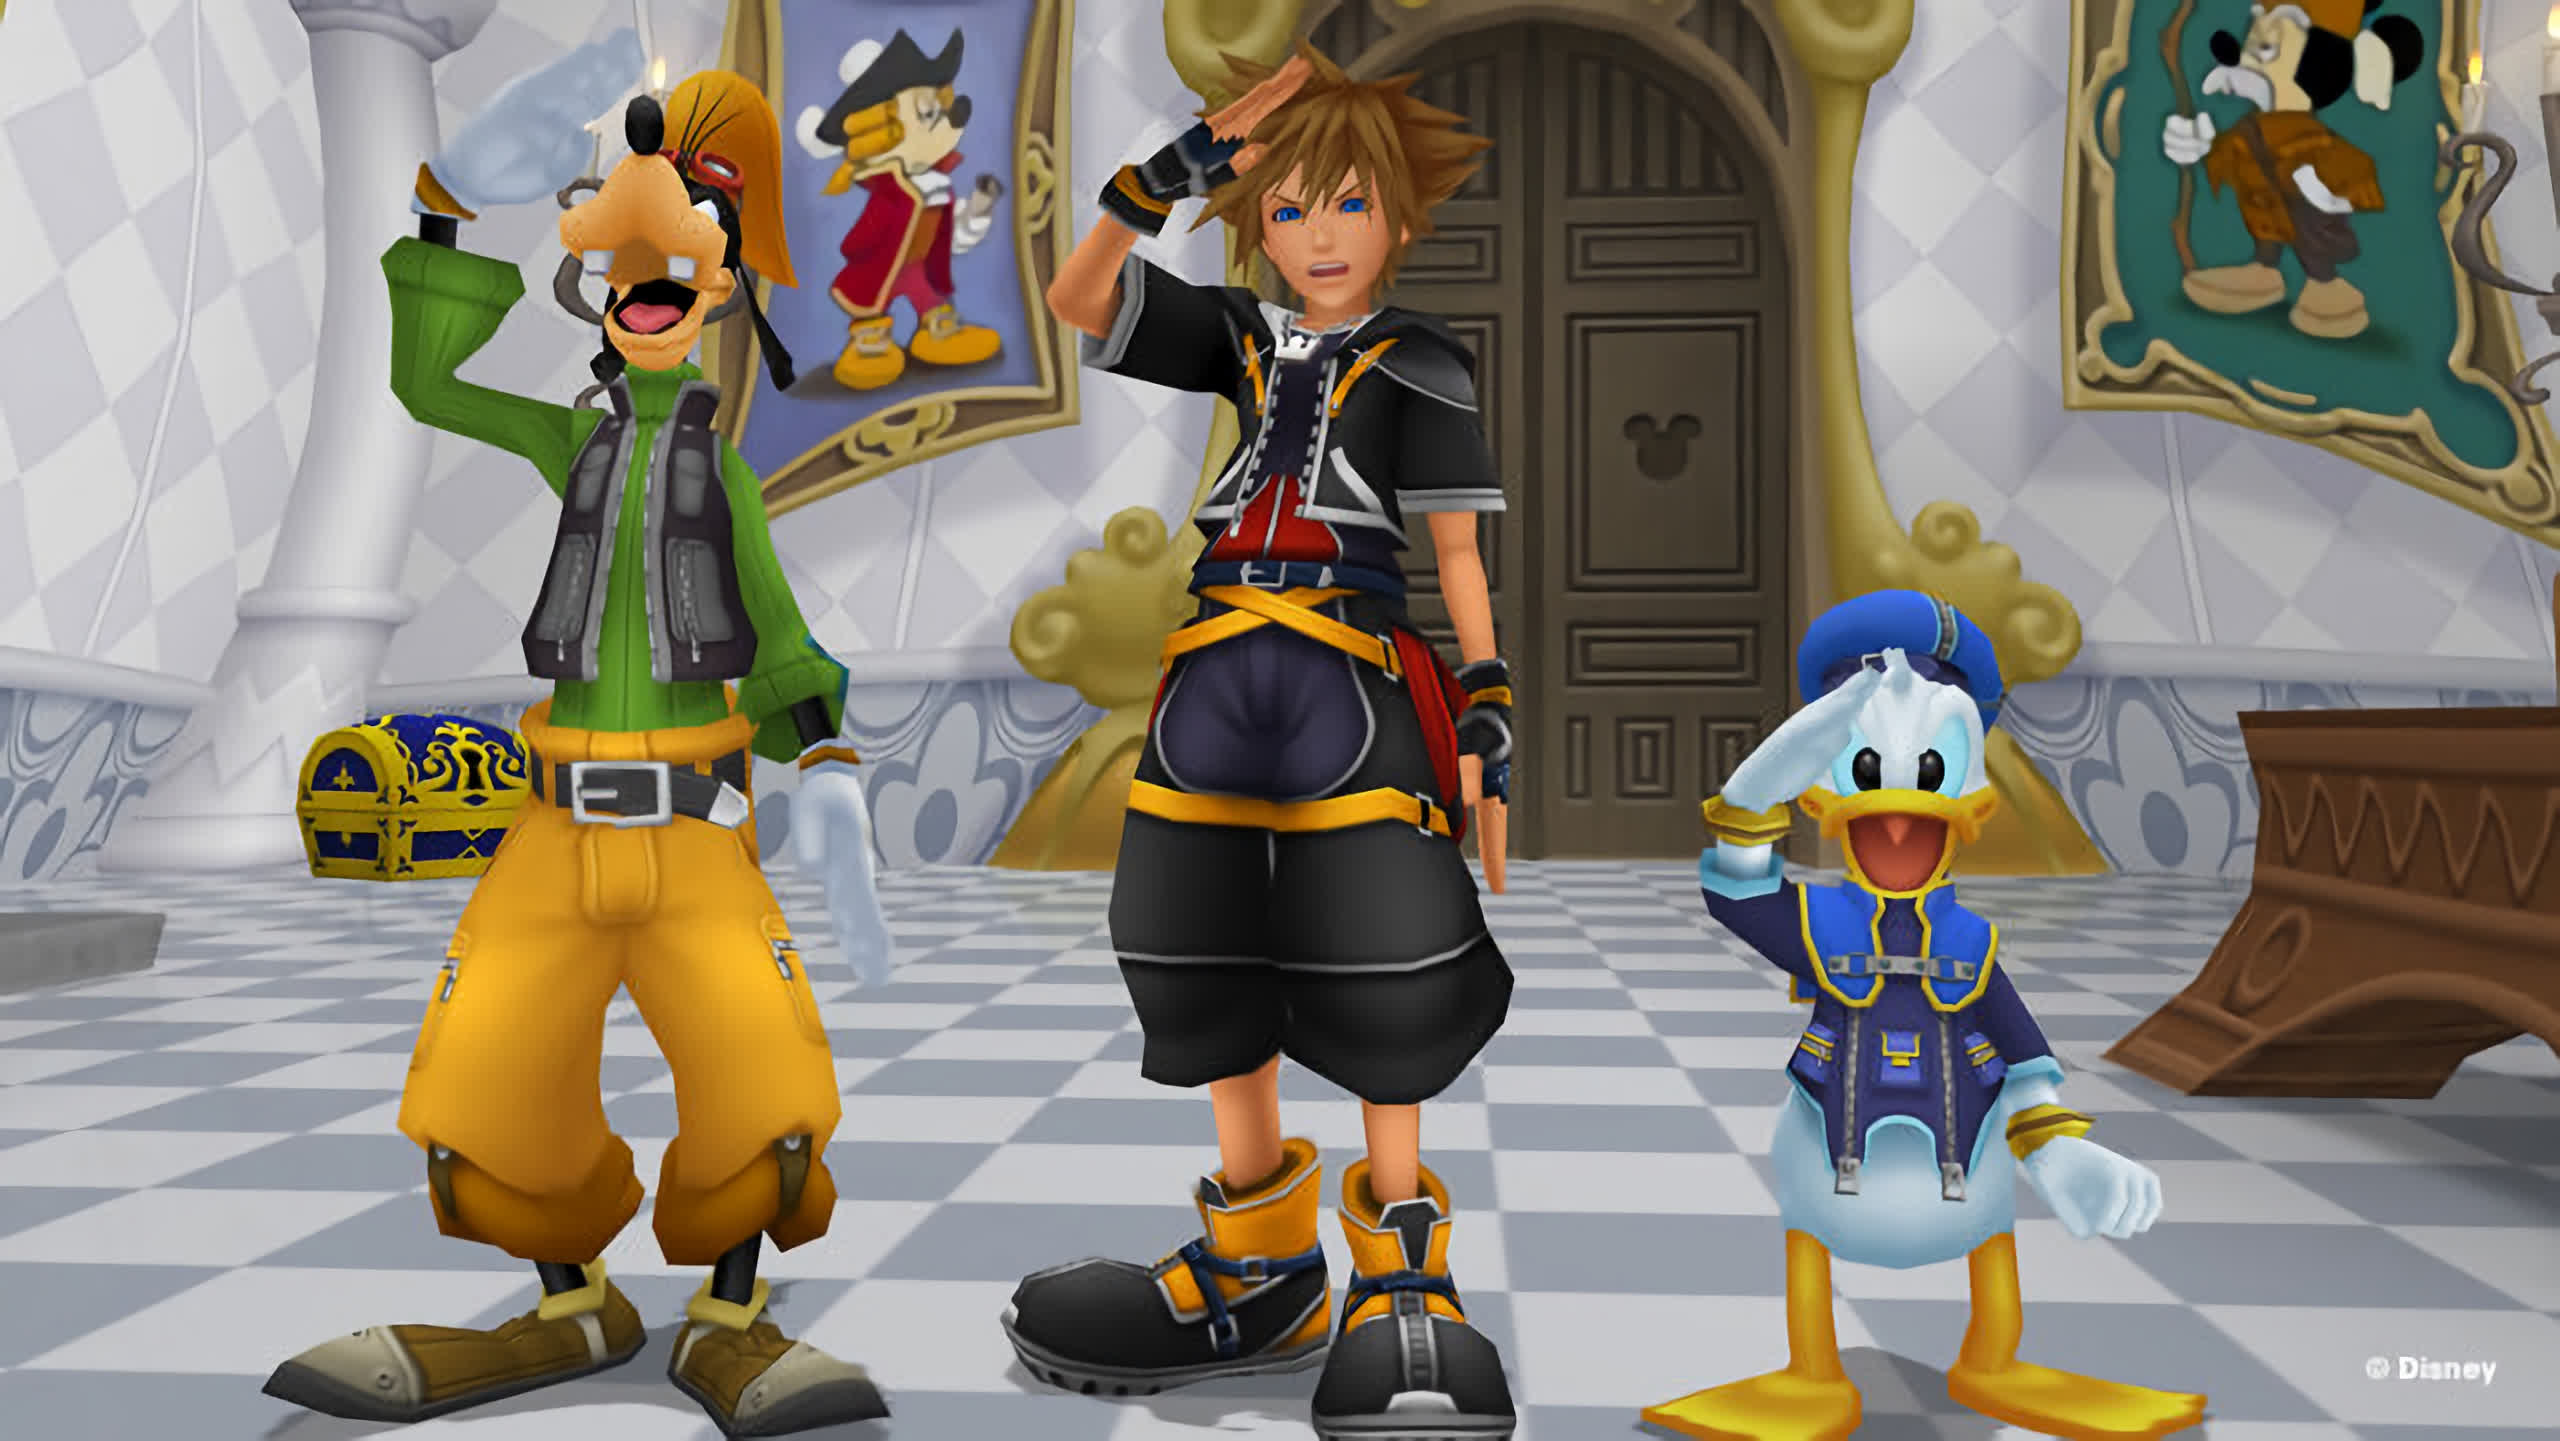 Kingdom Hearts franchise is coming to Nintendo Switch via cloud streaming